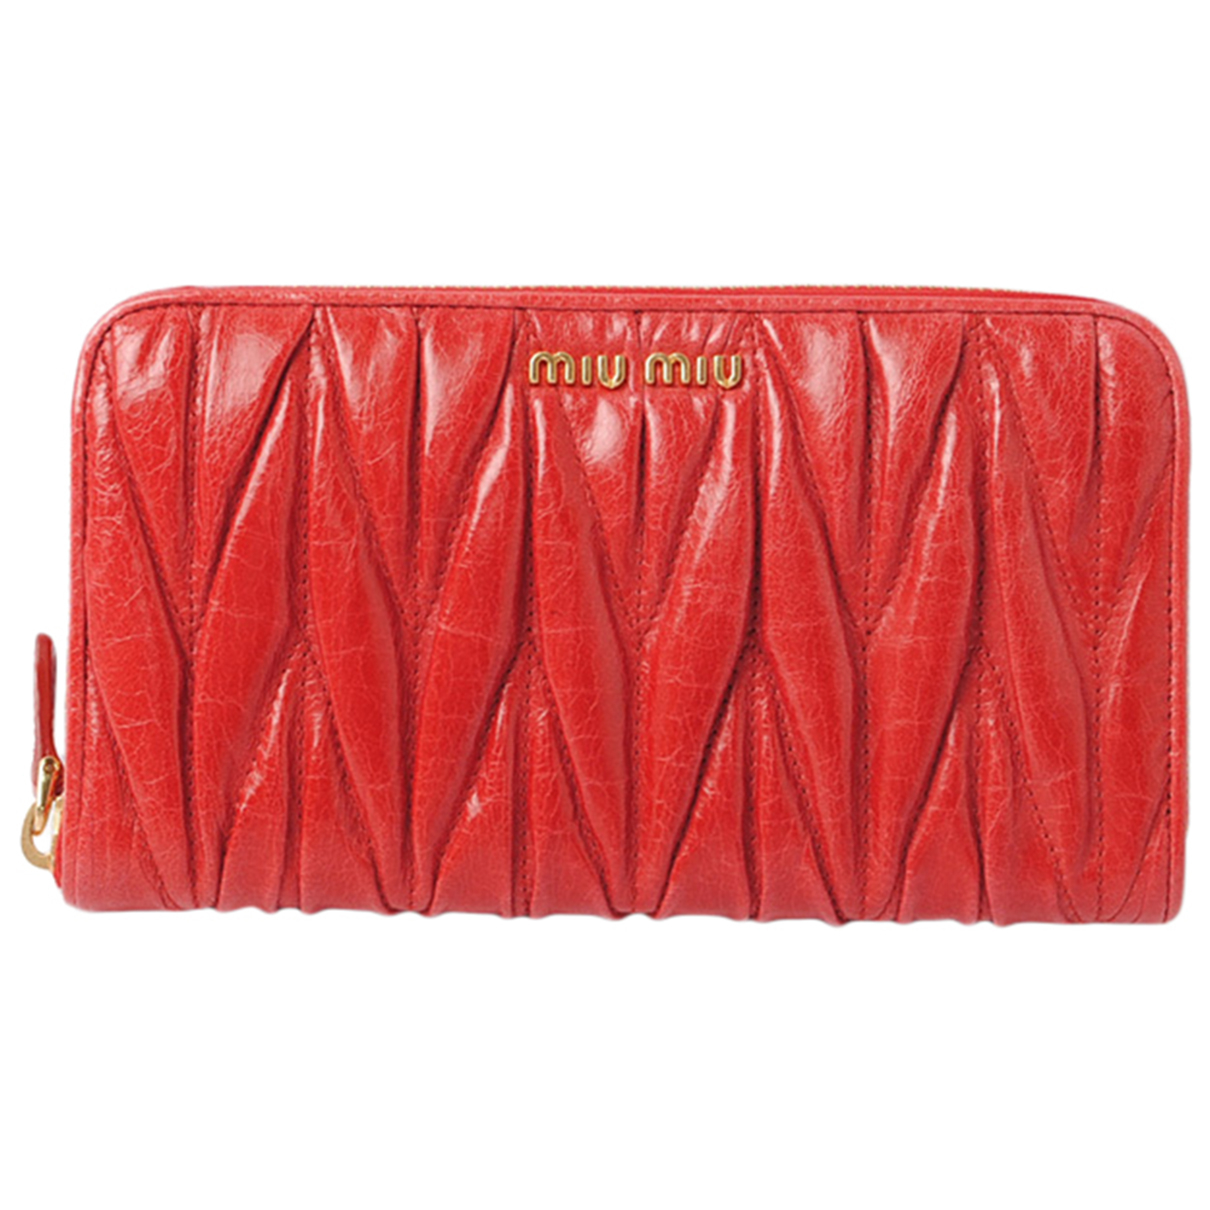 Miu Miu \N Red Leather wallet for Women \N